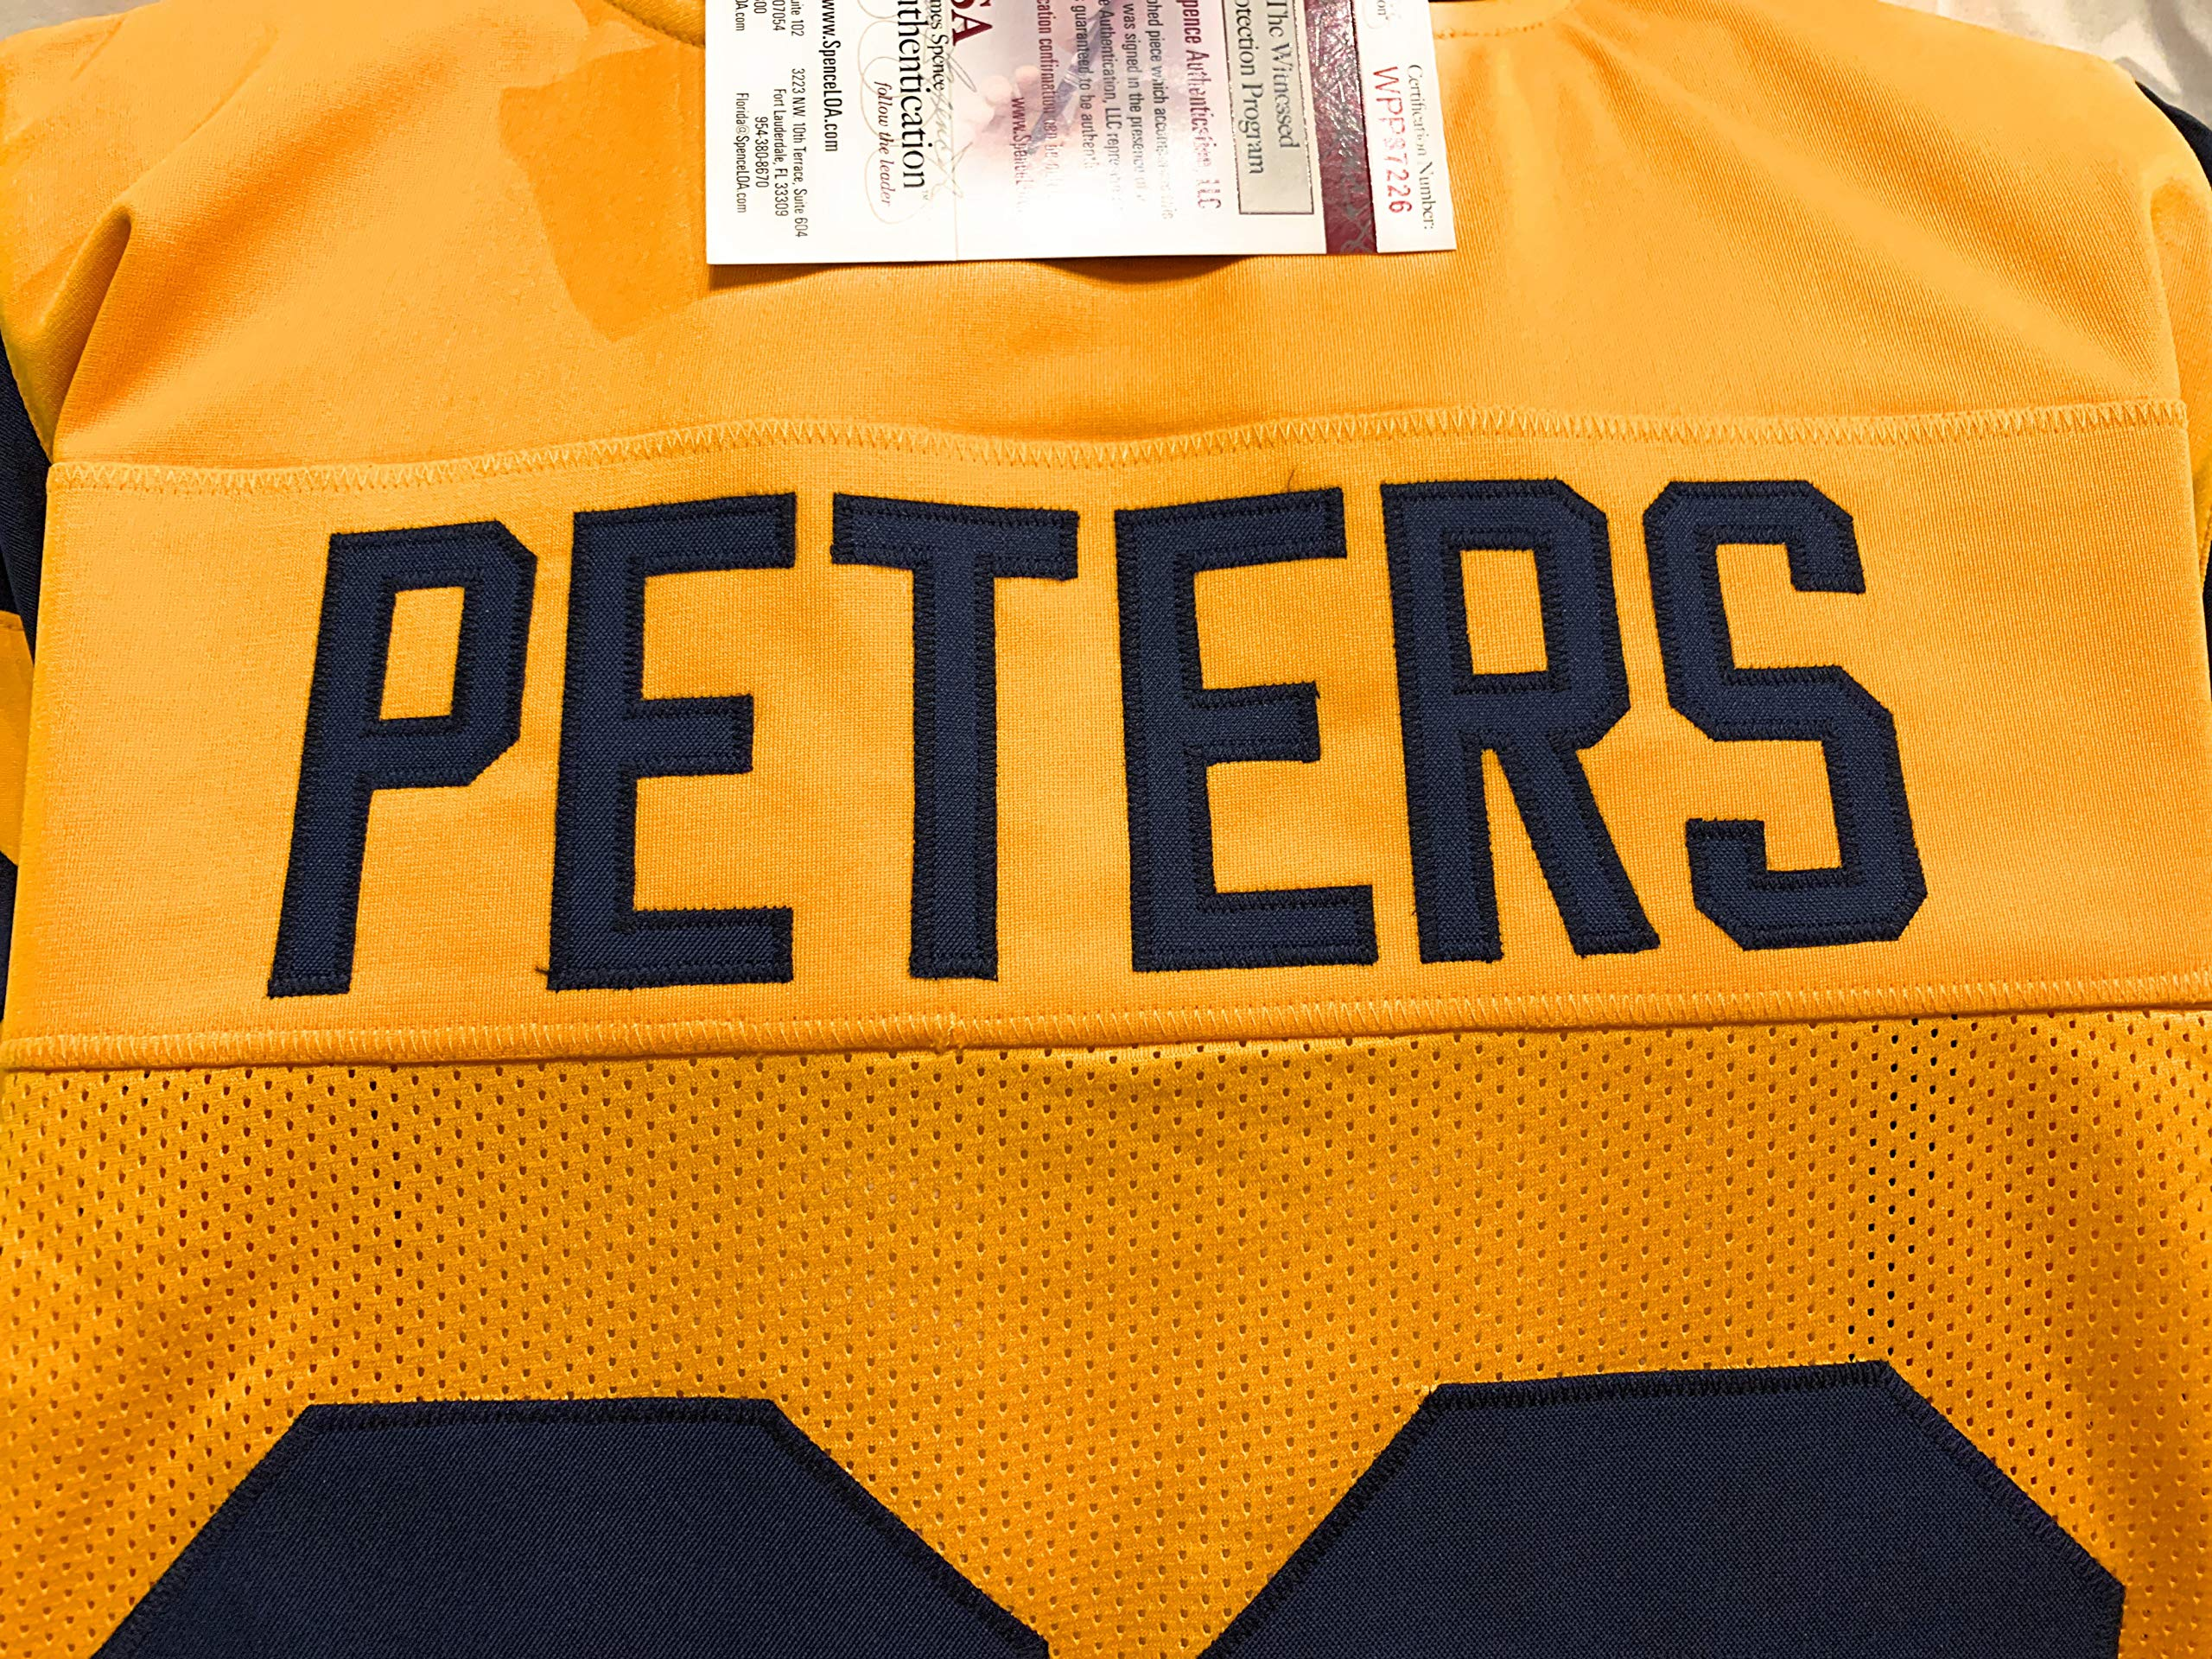 Marcus Peters Los Angeles Rams Signed Autograph Custom Yellow Jersey JSA Witnessed Certified